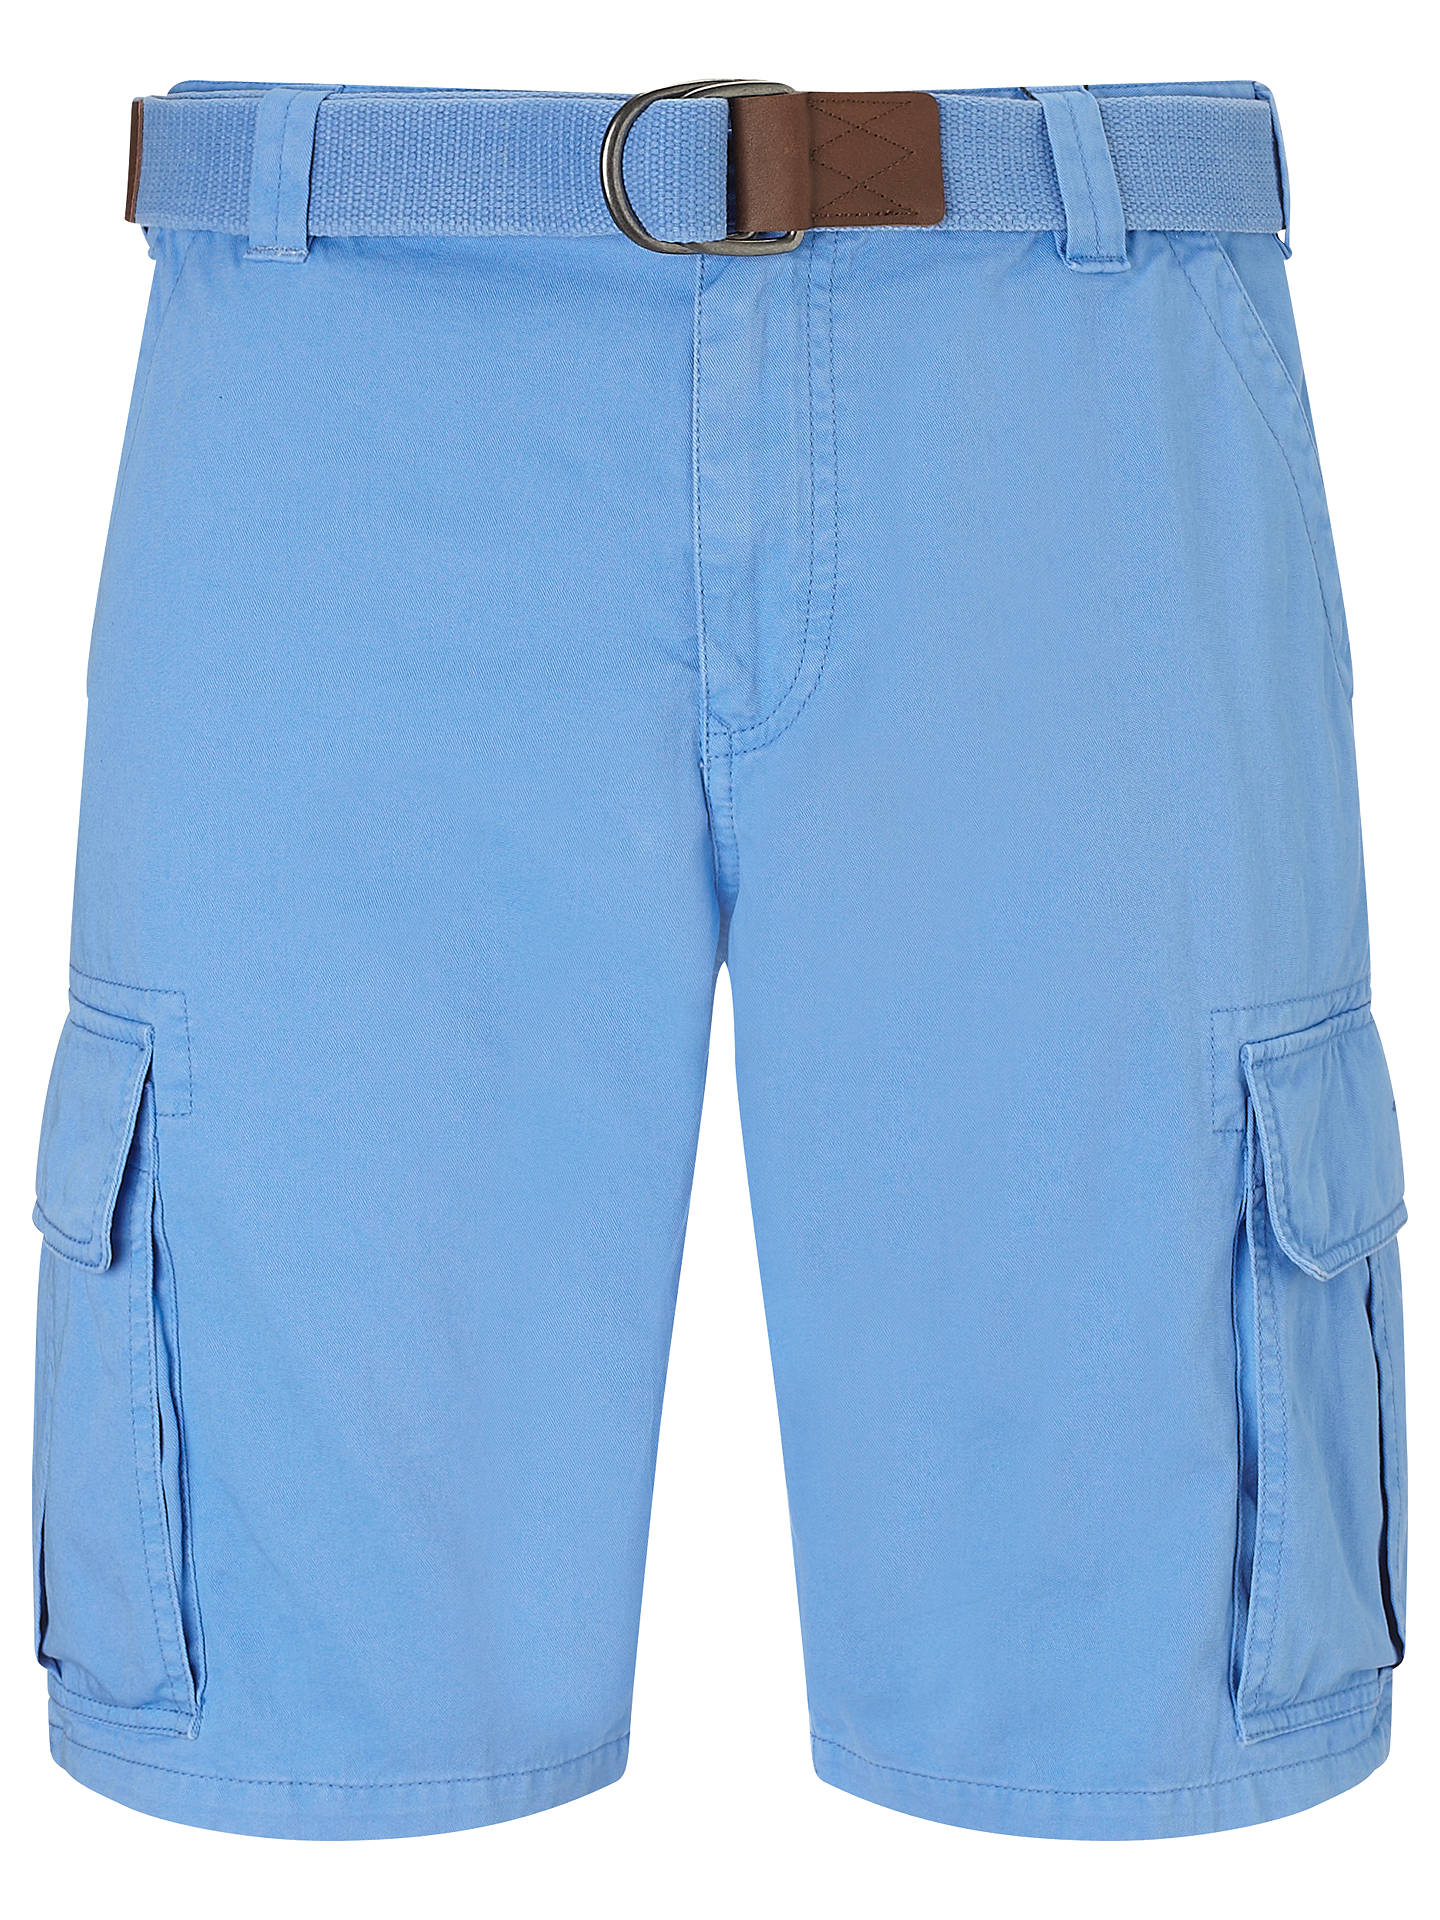 4335d2108d Buy Gant Belted Cotton Cargo Shorts, Pacific, 32 Online at johnlewis.com ...